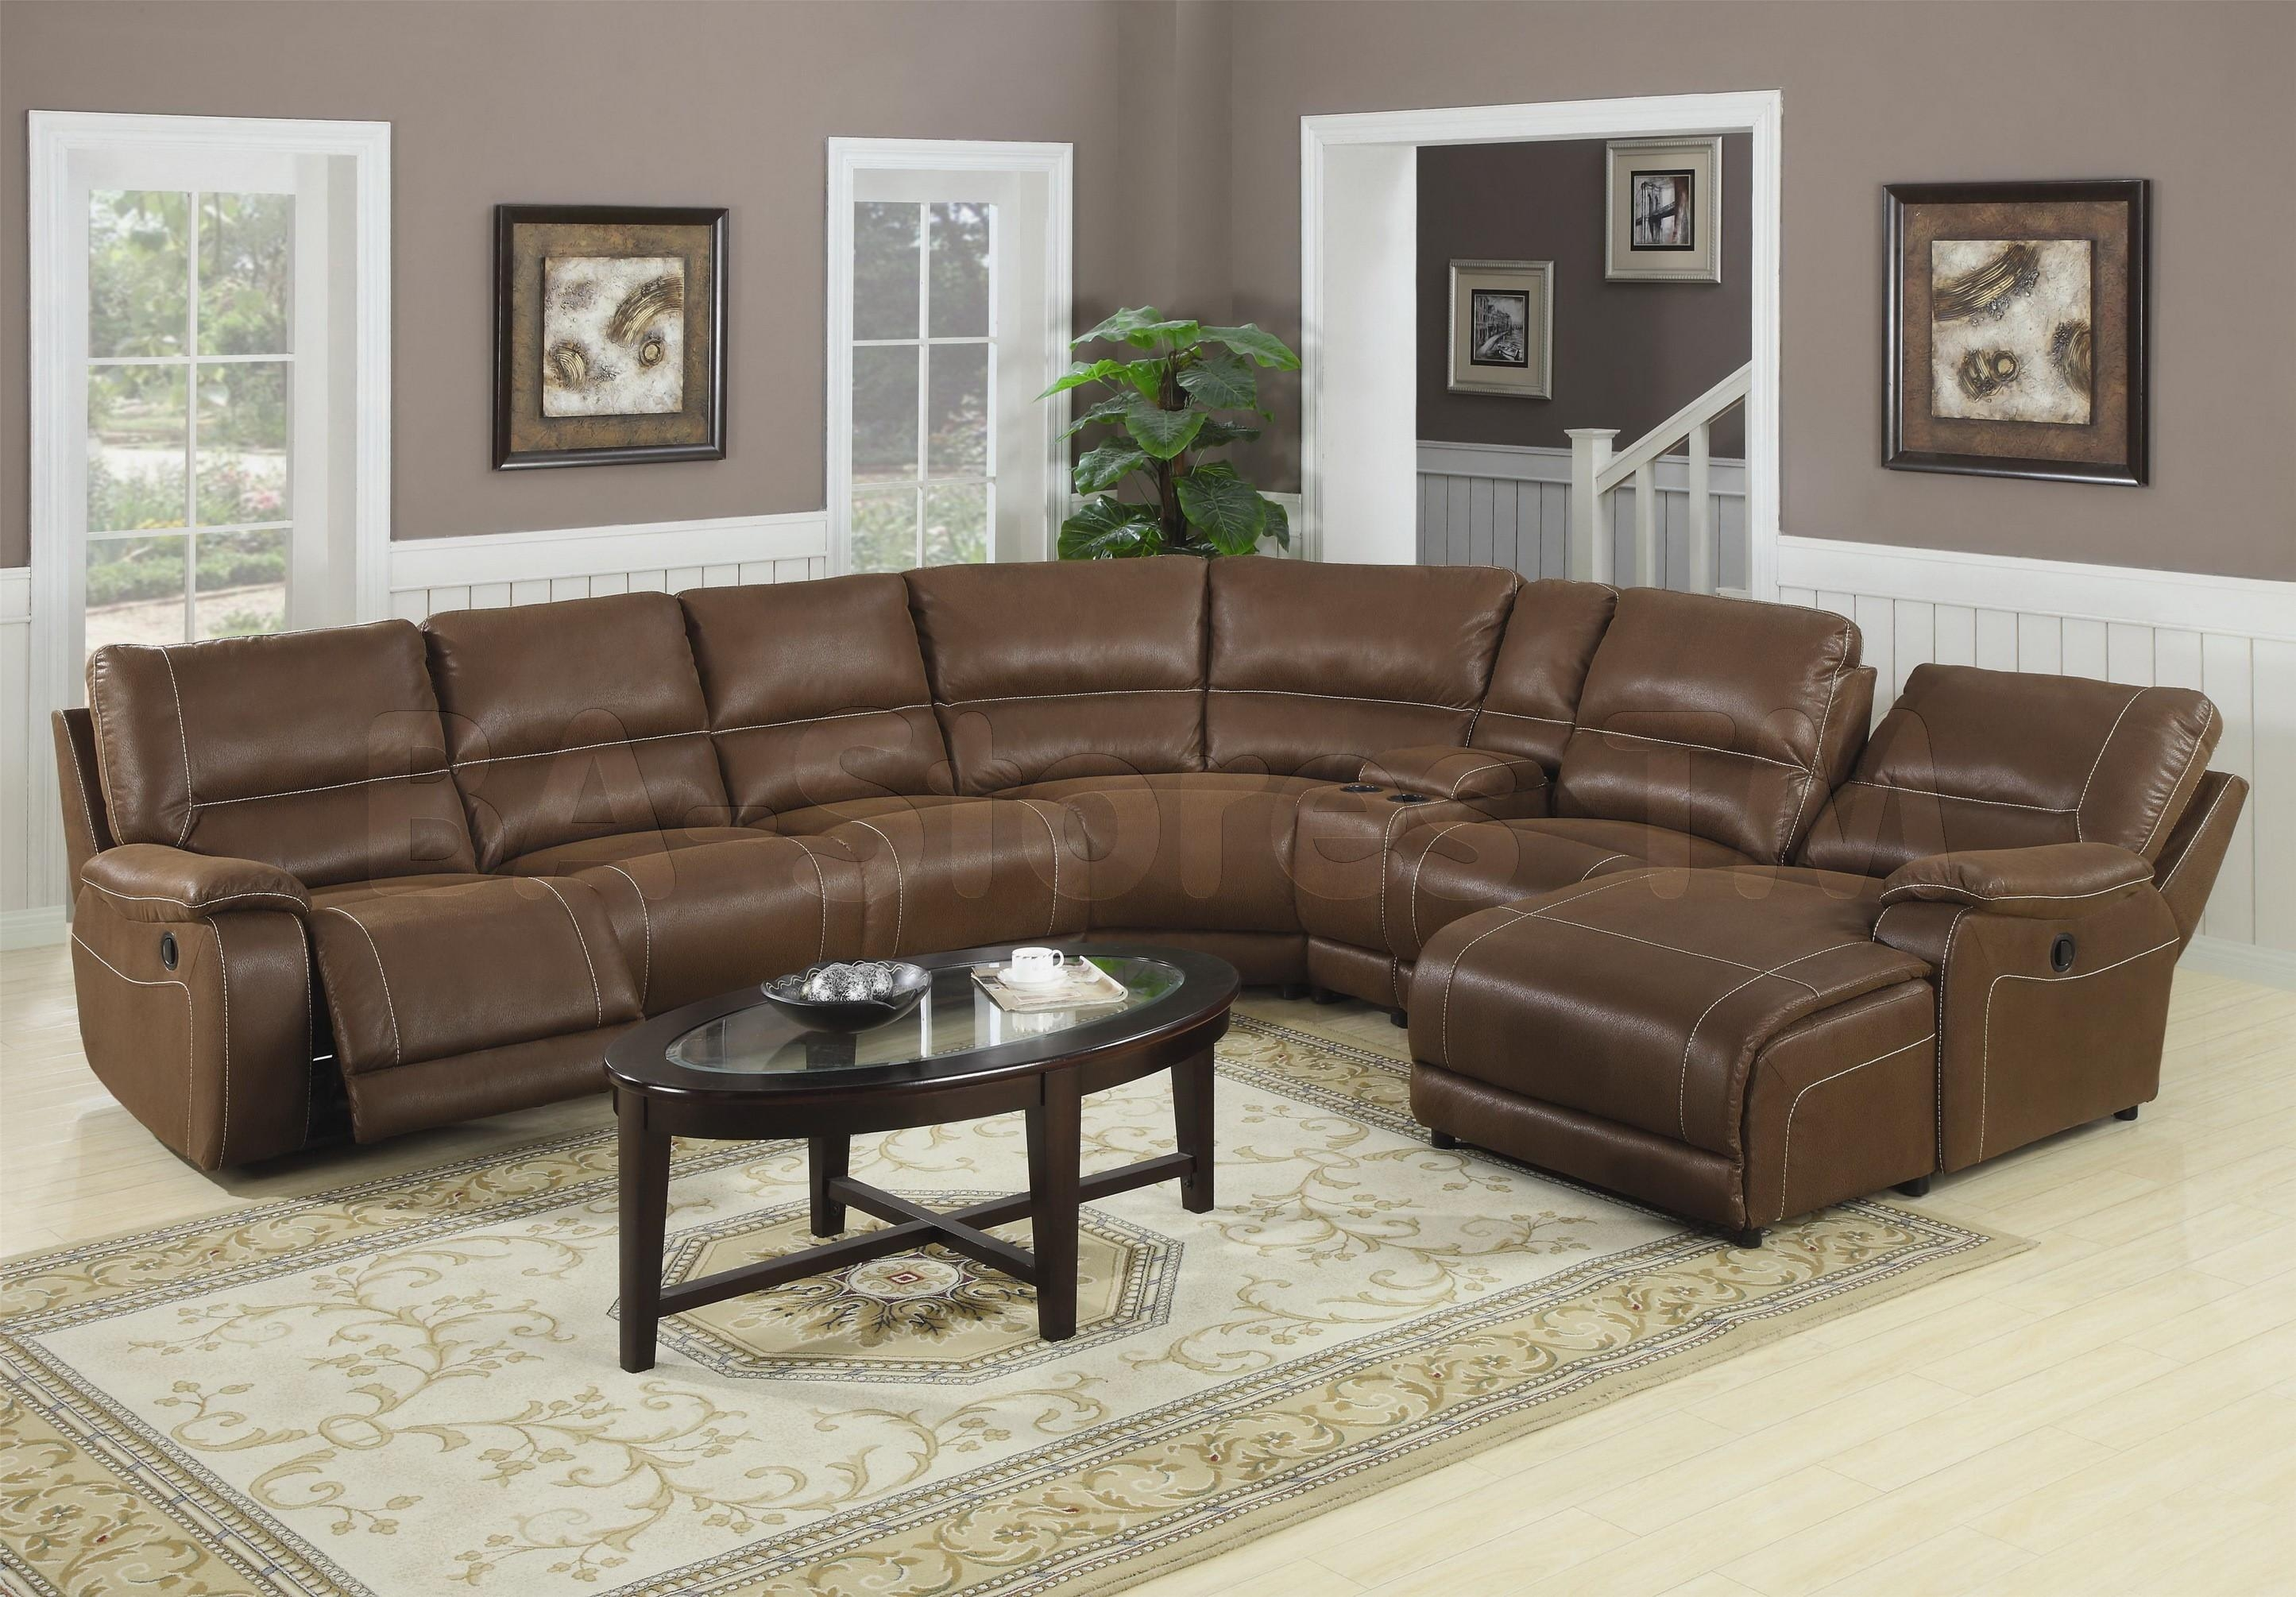 Extra Large Sectional Sofas With Chaise G Home Design With Regard To Extra Large Sectional Sofas (View 5 of 15)